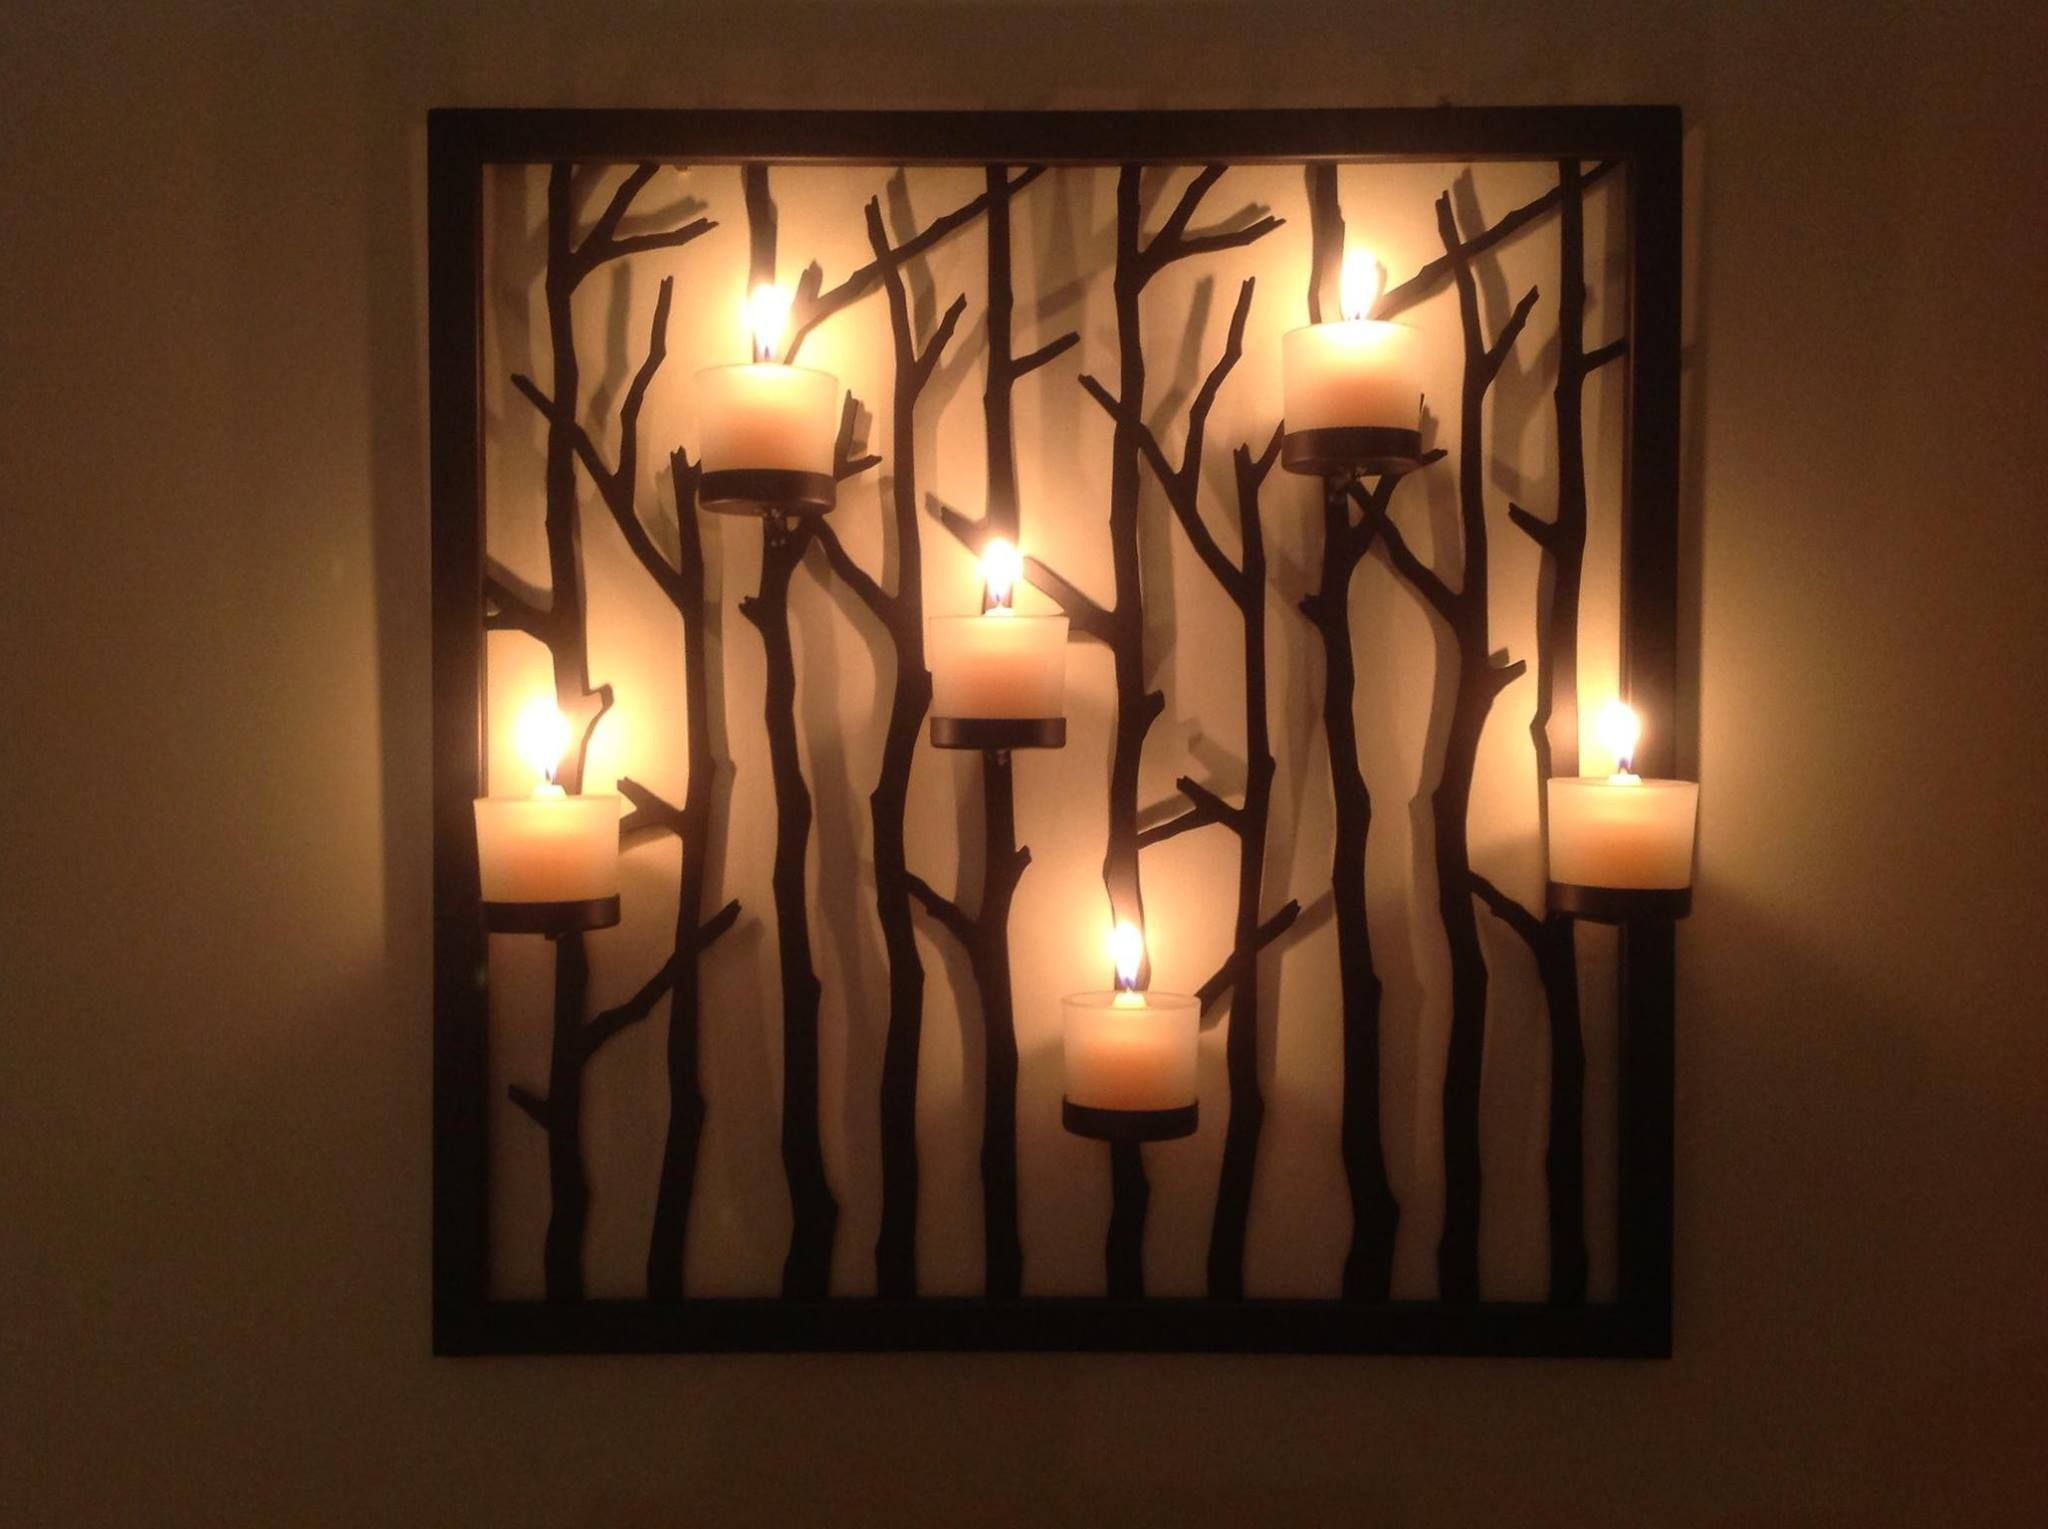 Best 25+ Candle stands ideas on Pinterest | Floor candle ... on Large Wall Sconces Candle Holders Decorative id=97285